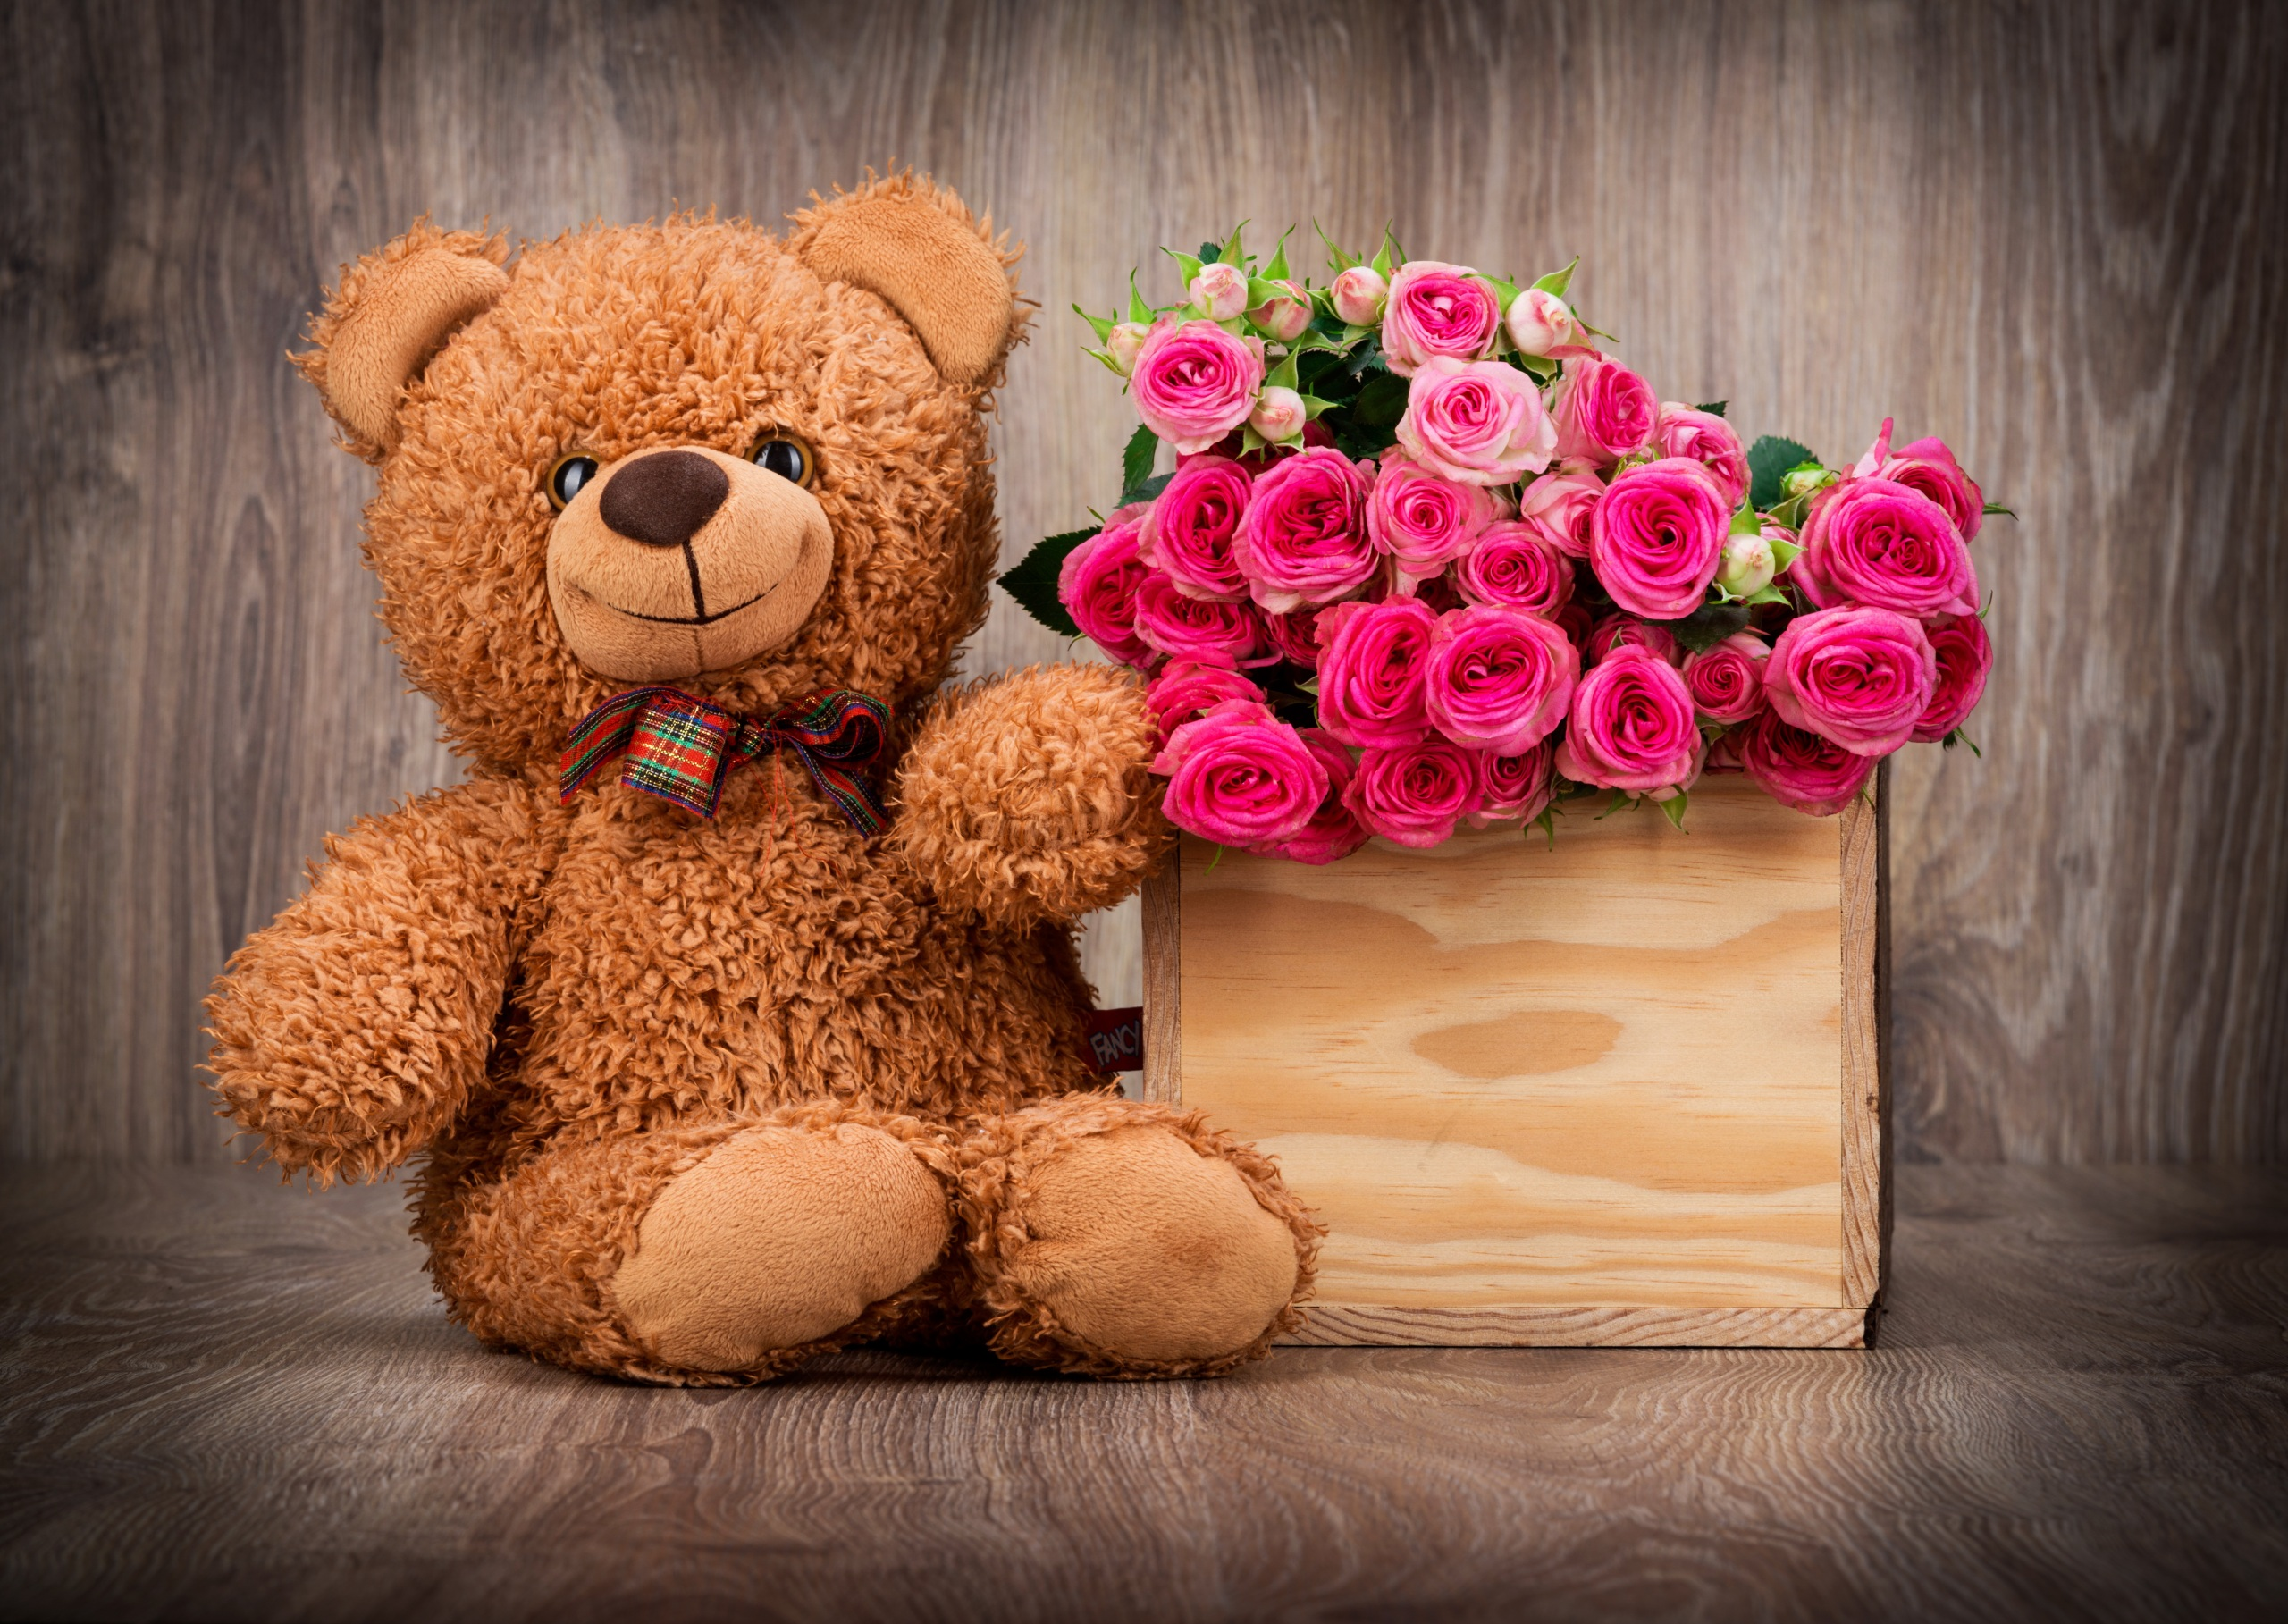 Teddy bear with pink roses - photo#8